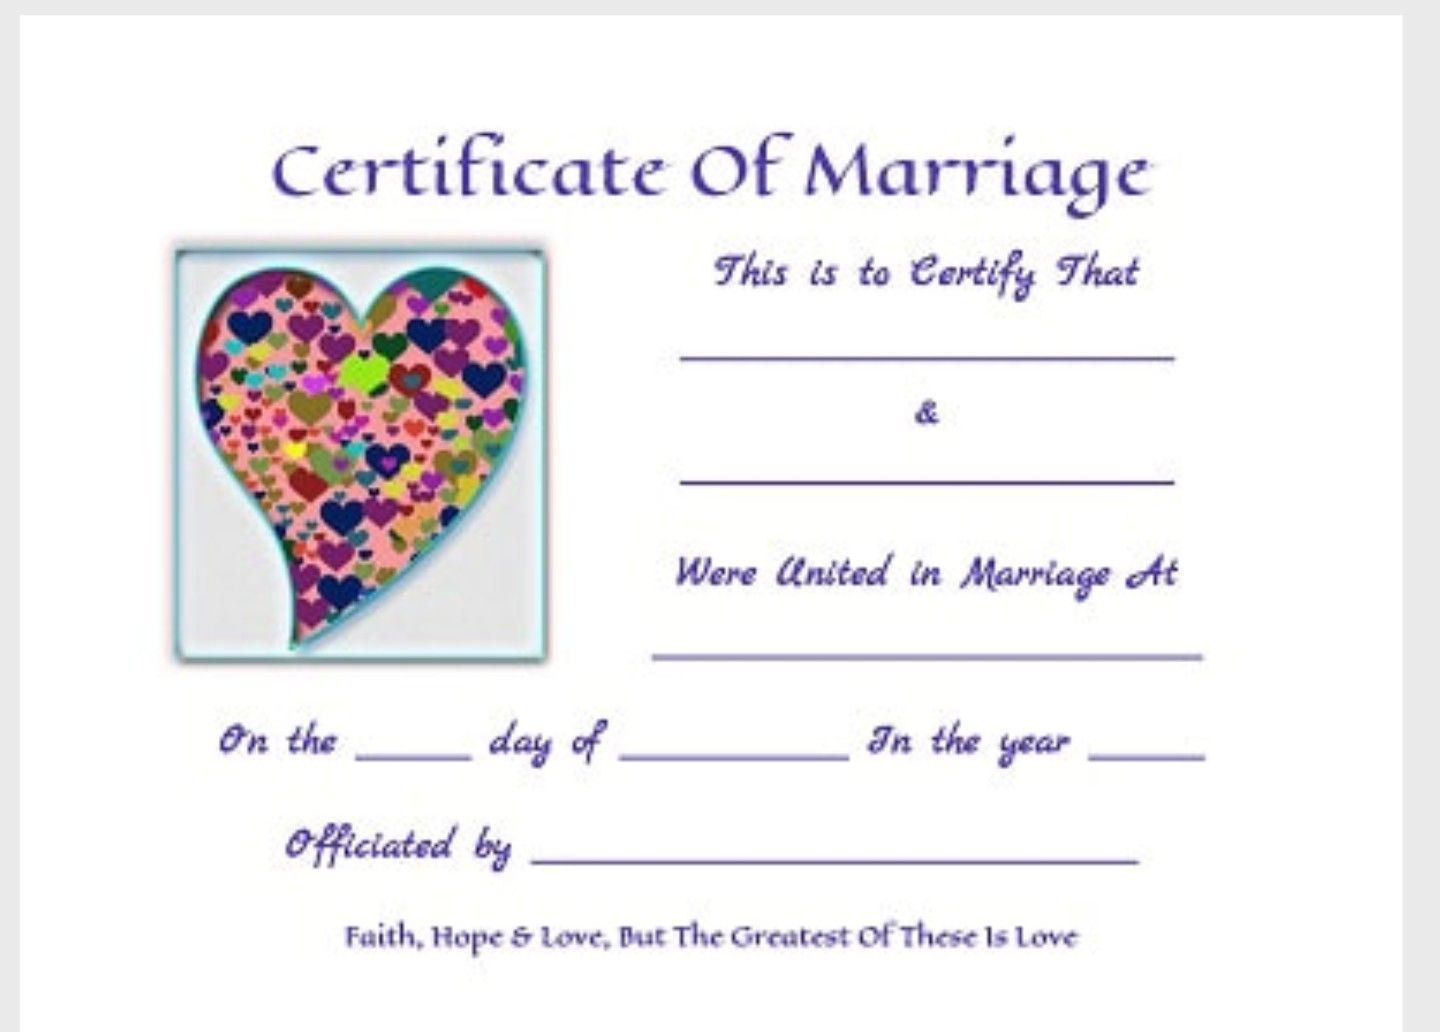 000 Striking Free Marriage Certificate Template Inspiration  Renewal Translation From Spanish To English Wedding DownloadFull